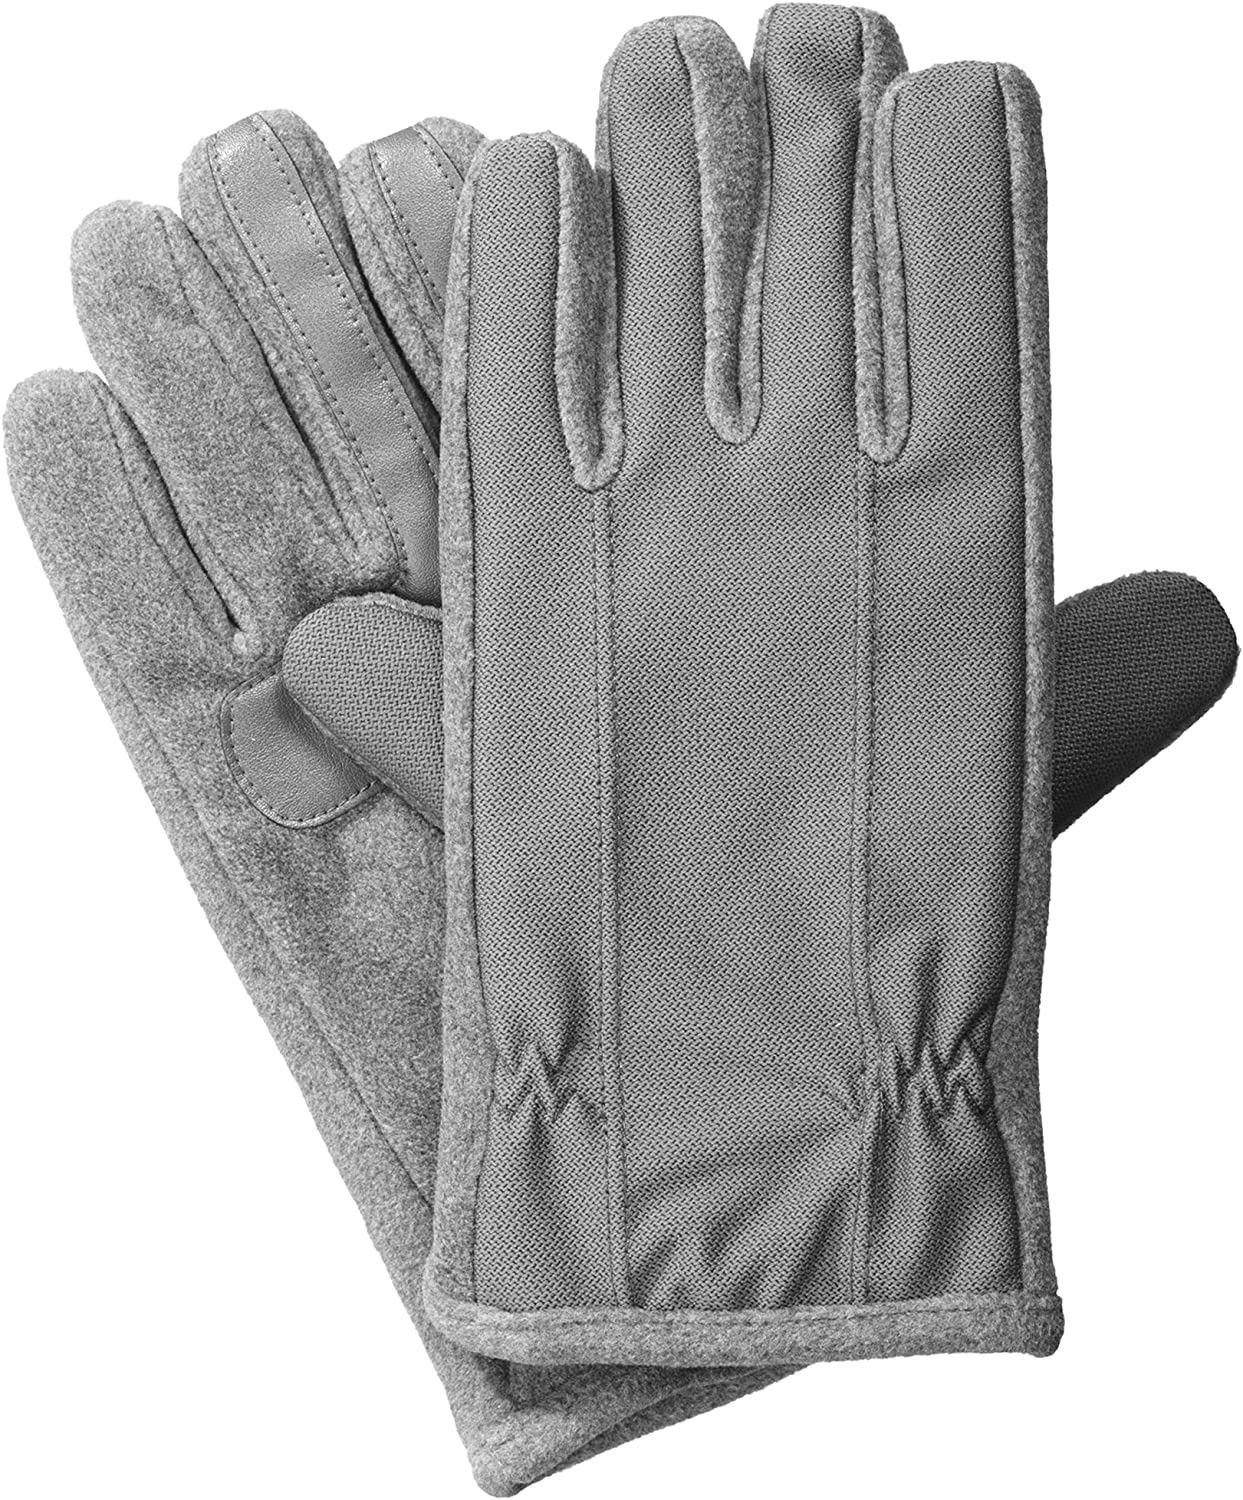 Isotoner Men/'s SmarTouch Gloves LG MSRP $50.00 with gift box